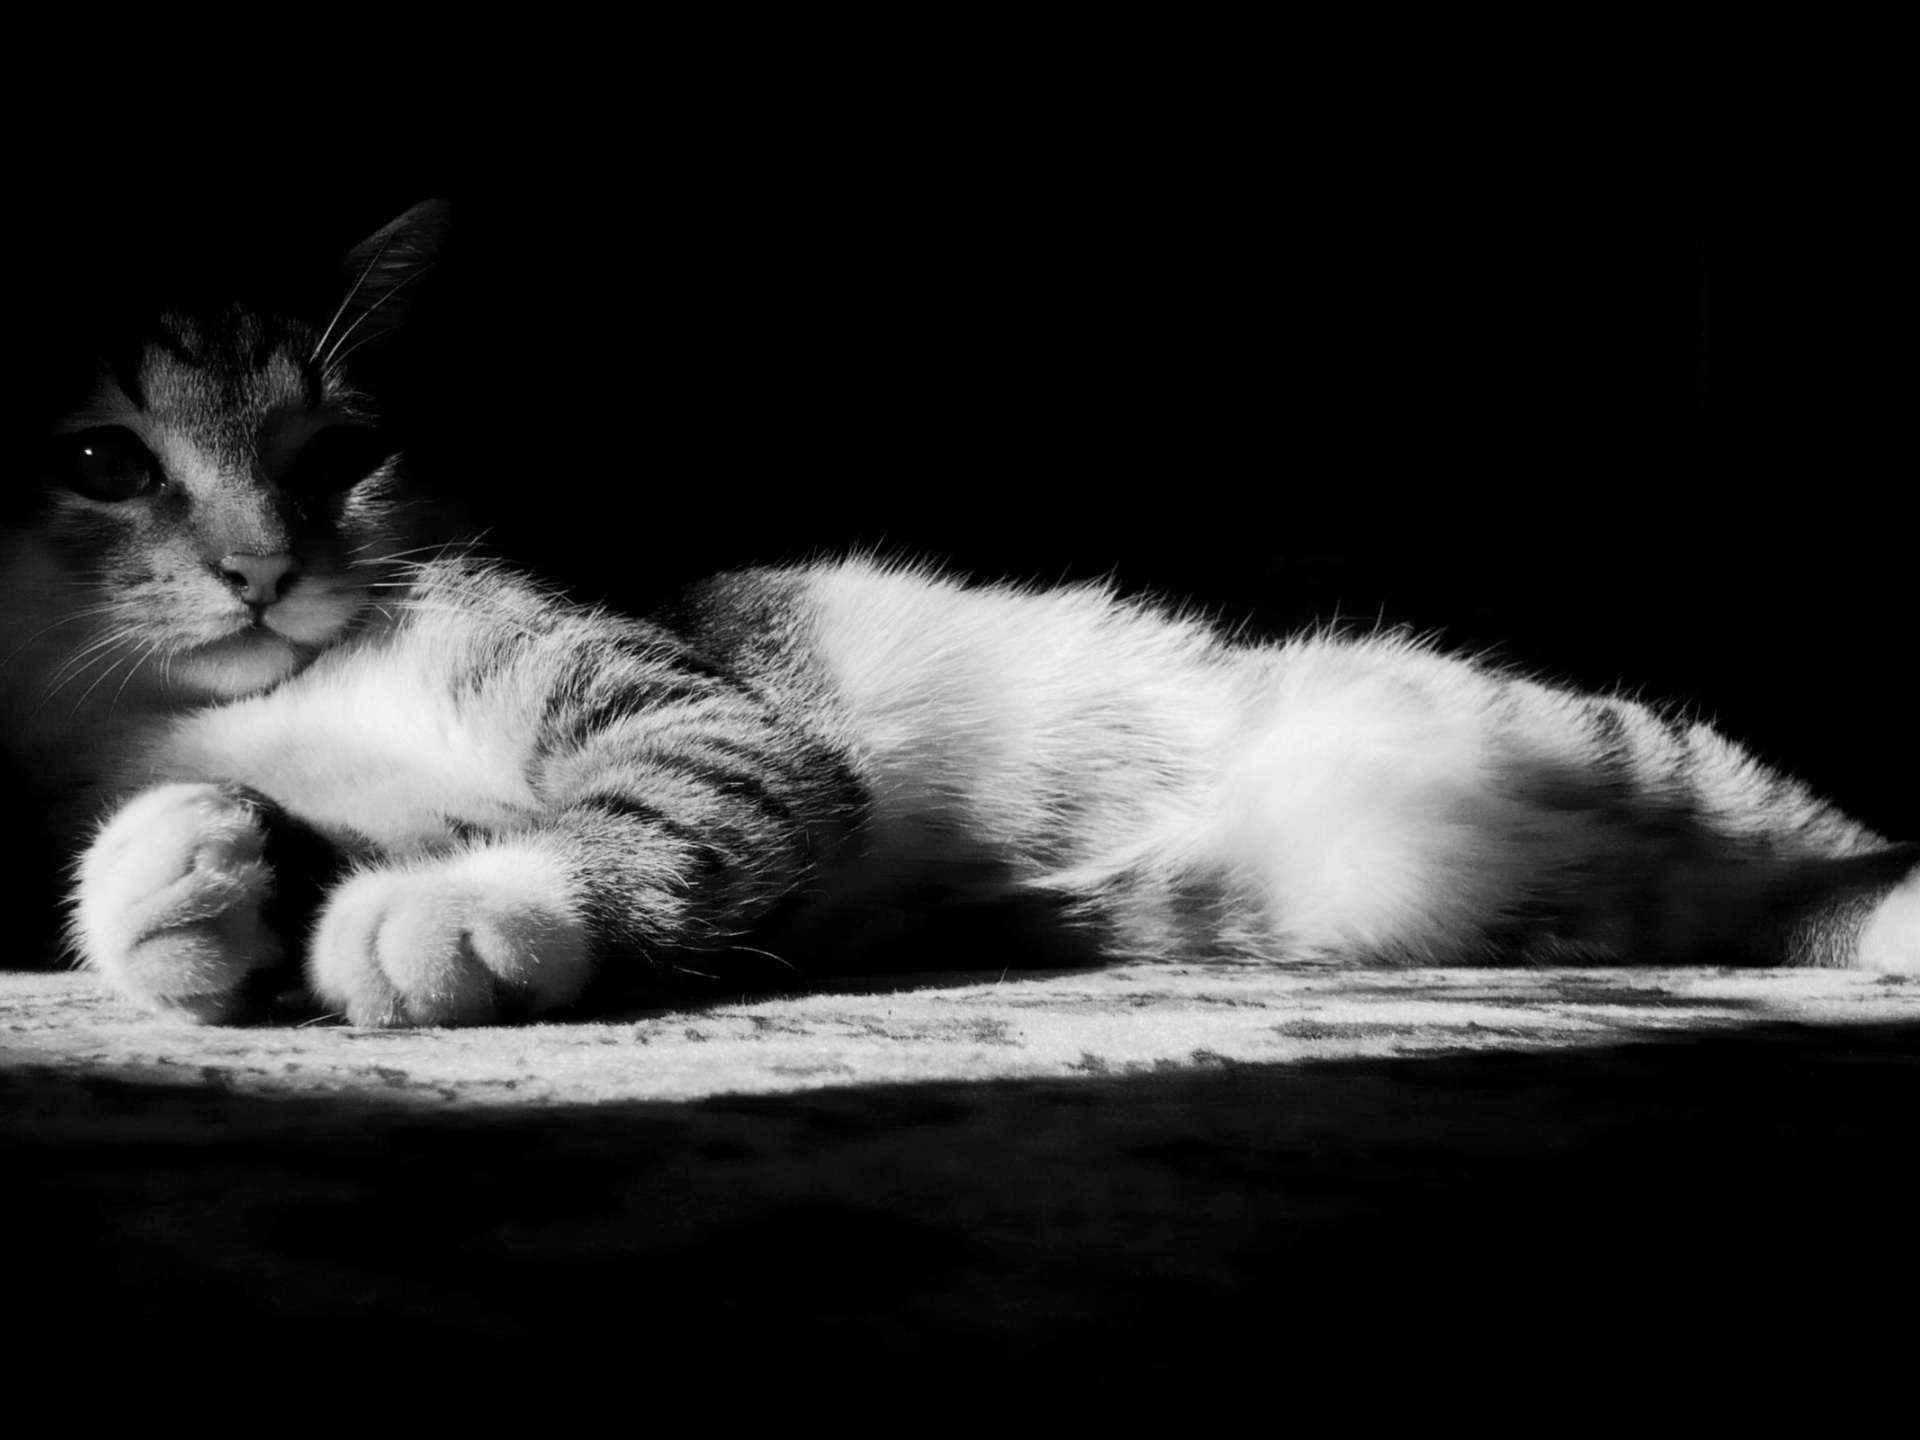 click to free download the wallpaper--Cute Animal Pics, Lazy Kitten in Black and White, Stay in Dark and Enjoy Sound Sleep 1920X1440 free wallpaper download